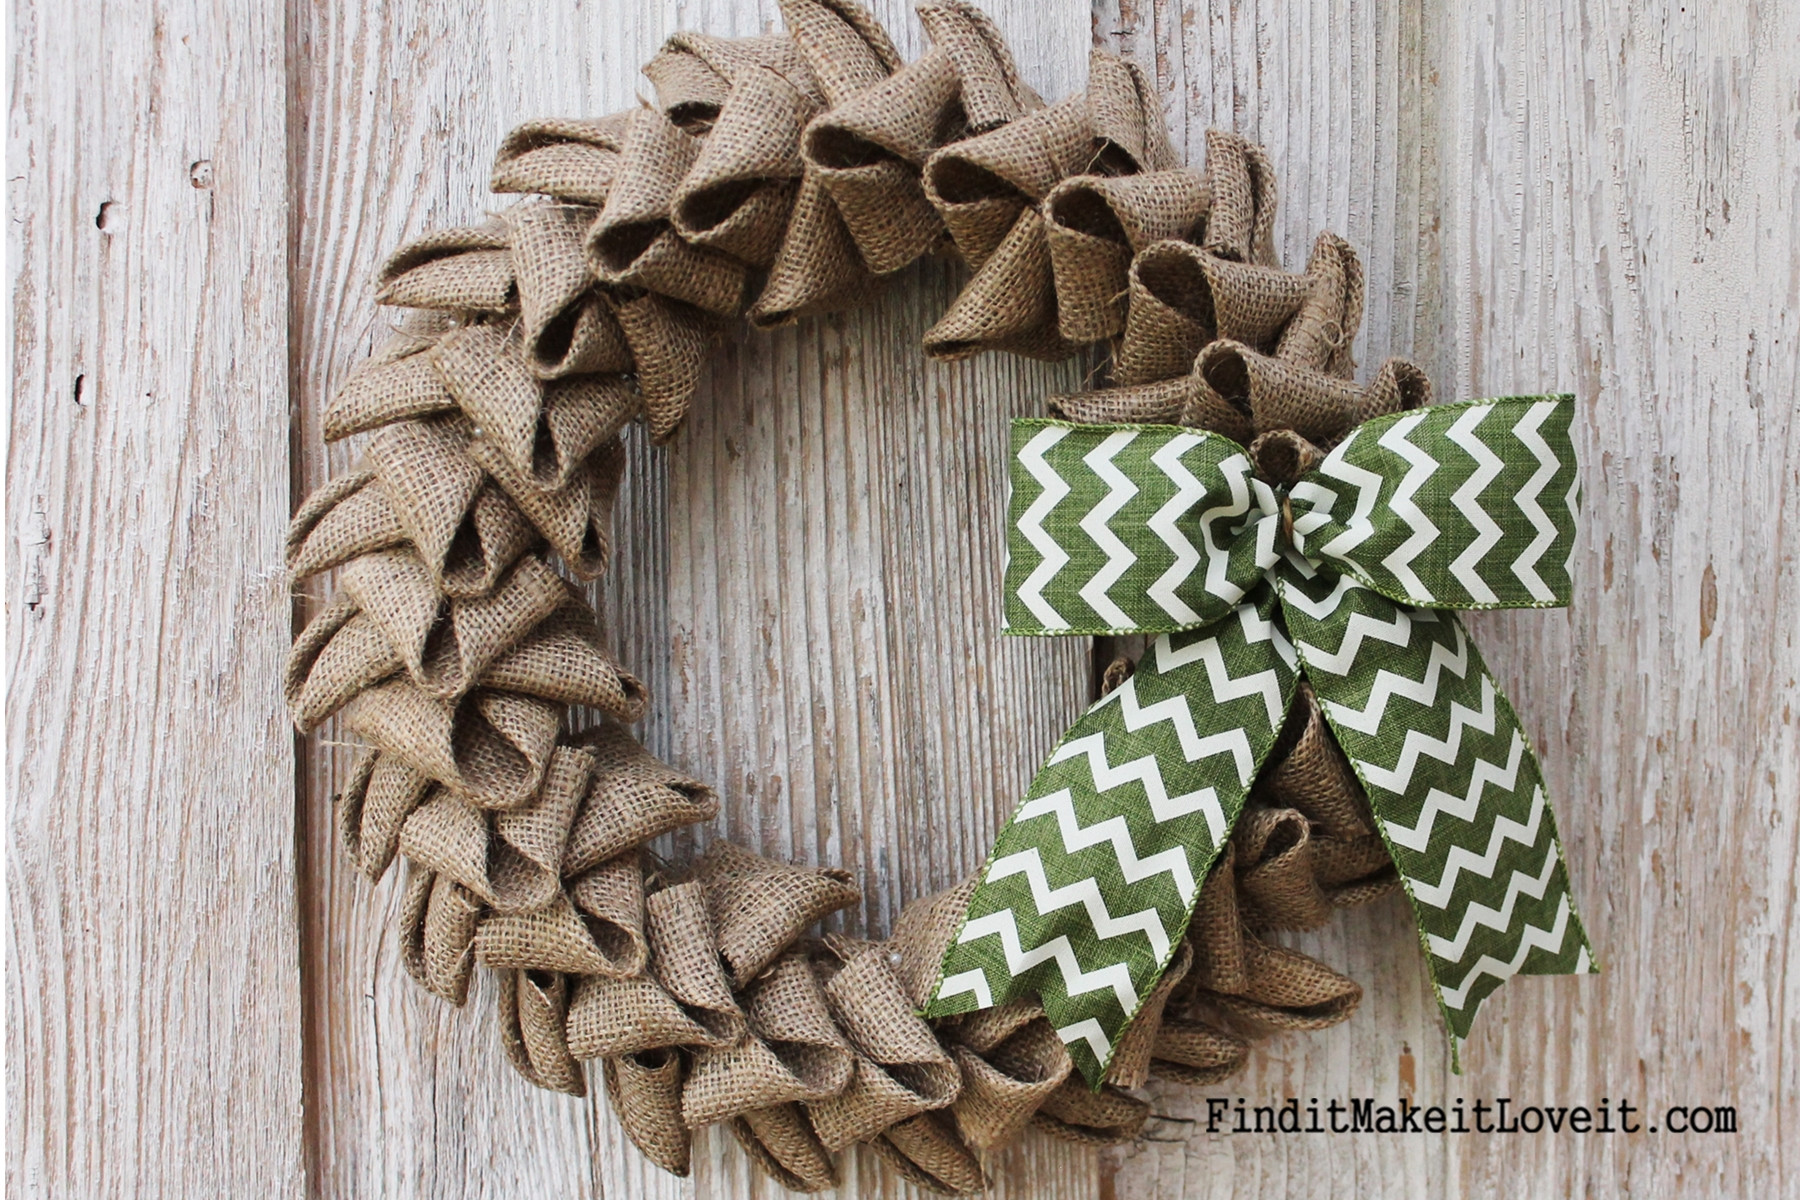 Best ideas about Burlap Wreath DIY . Save or Pin Petal Burlap Wreath How to Cheat the Perfect Bow Find Now.